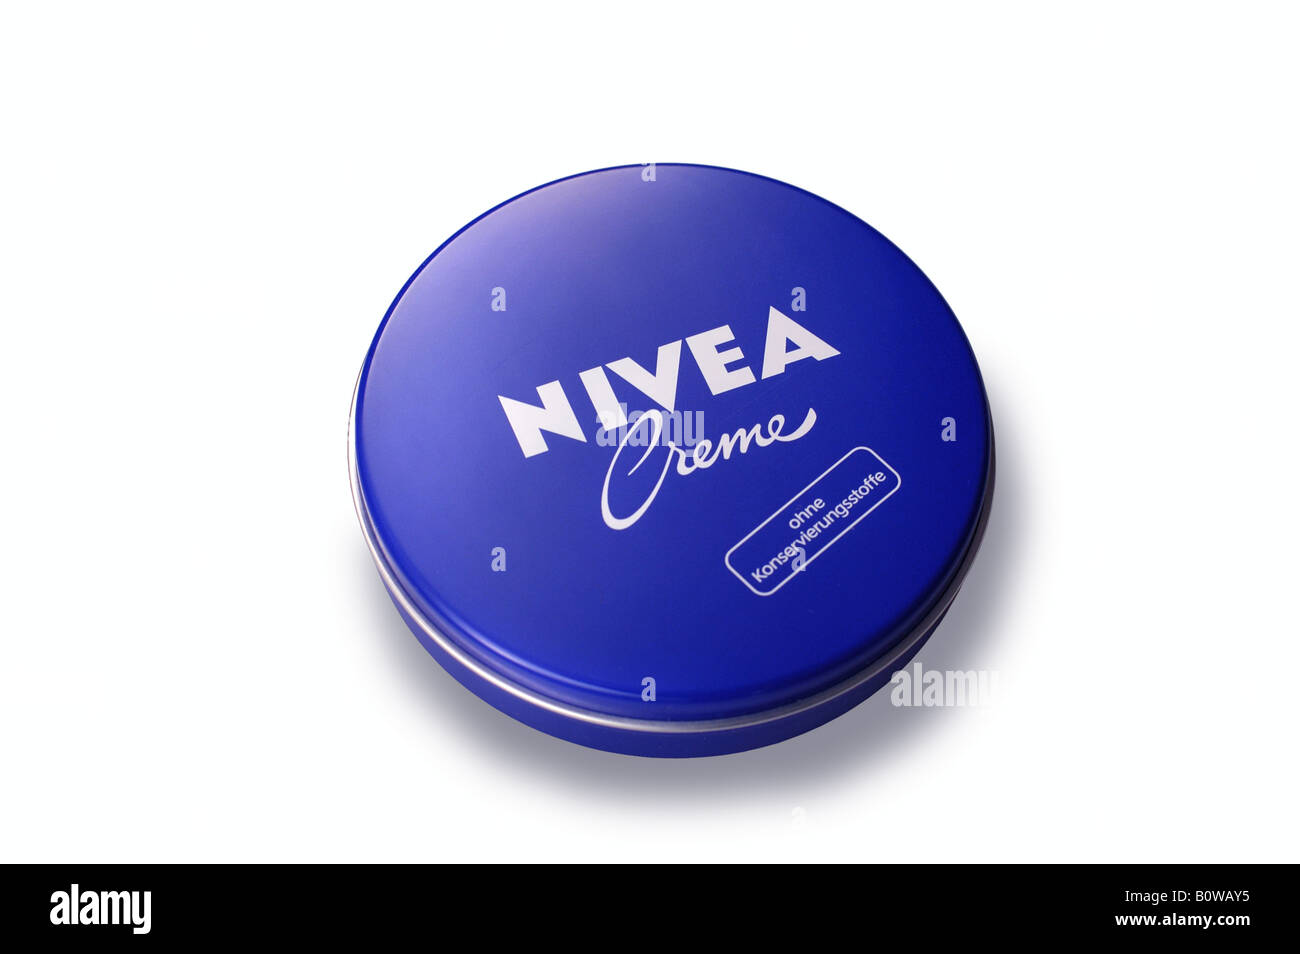 Nivea brand skin cream tin - Stock Image